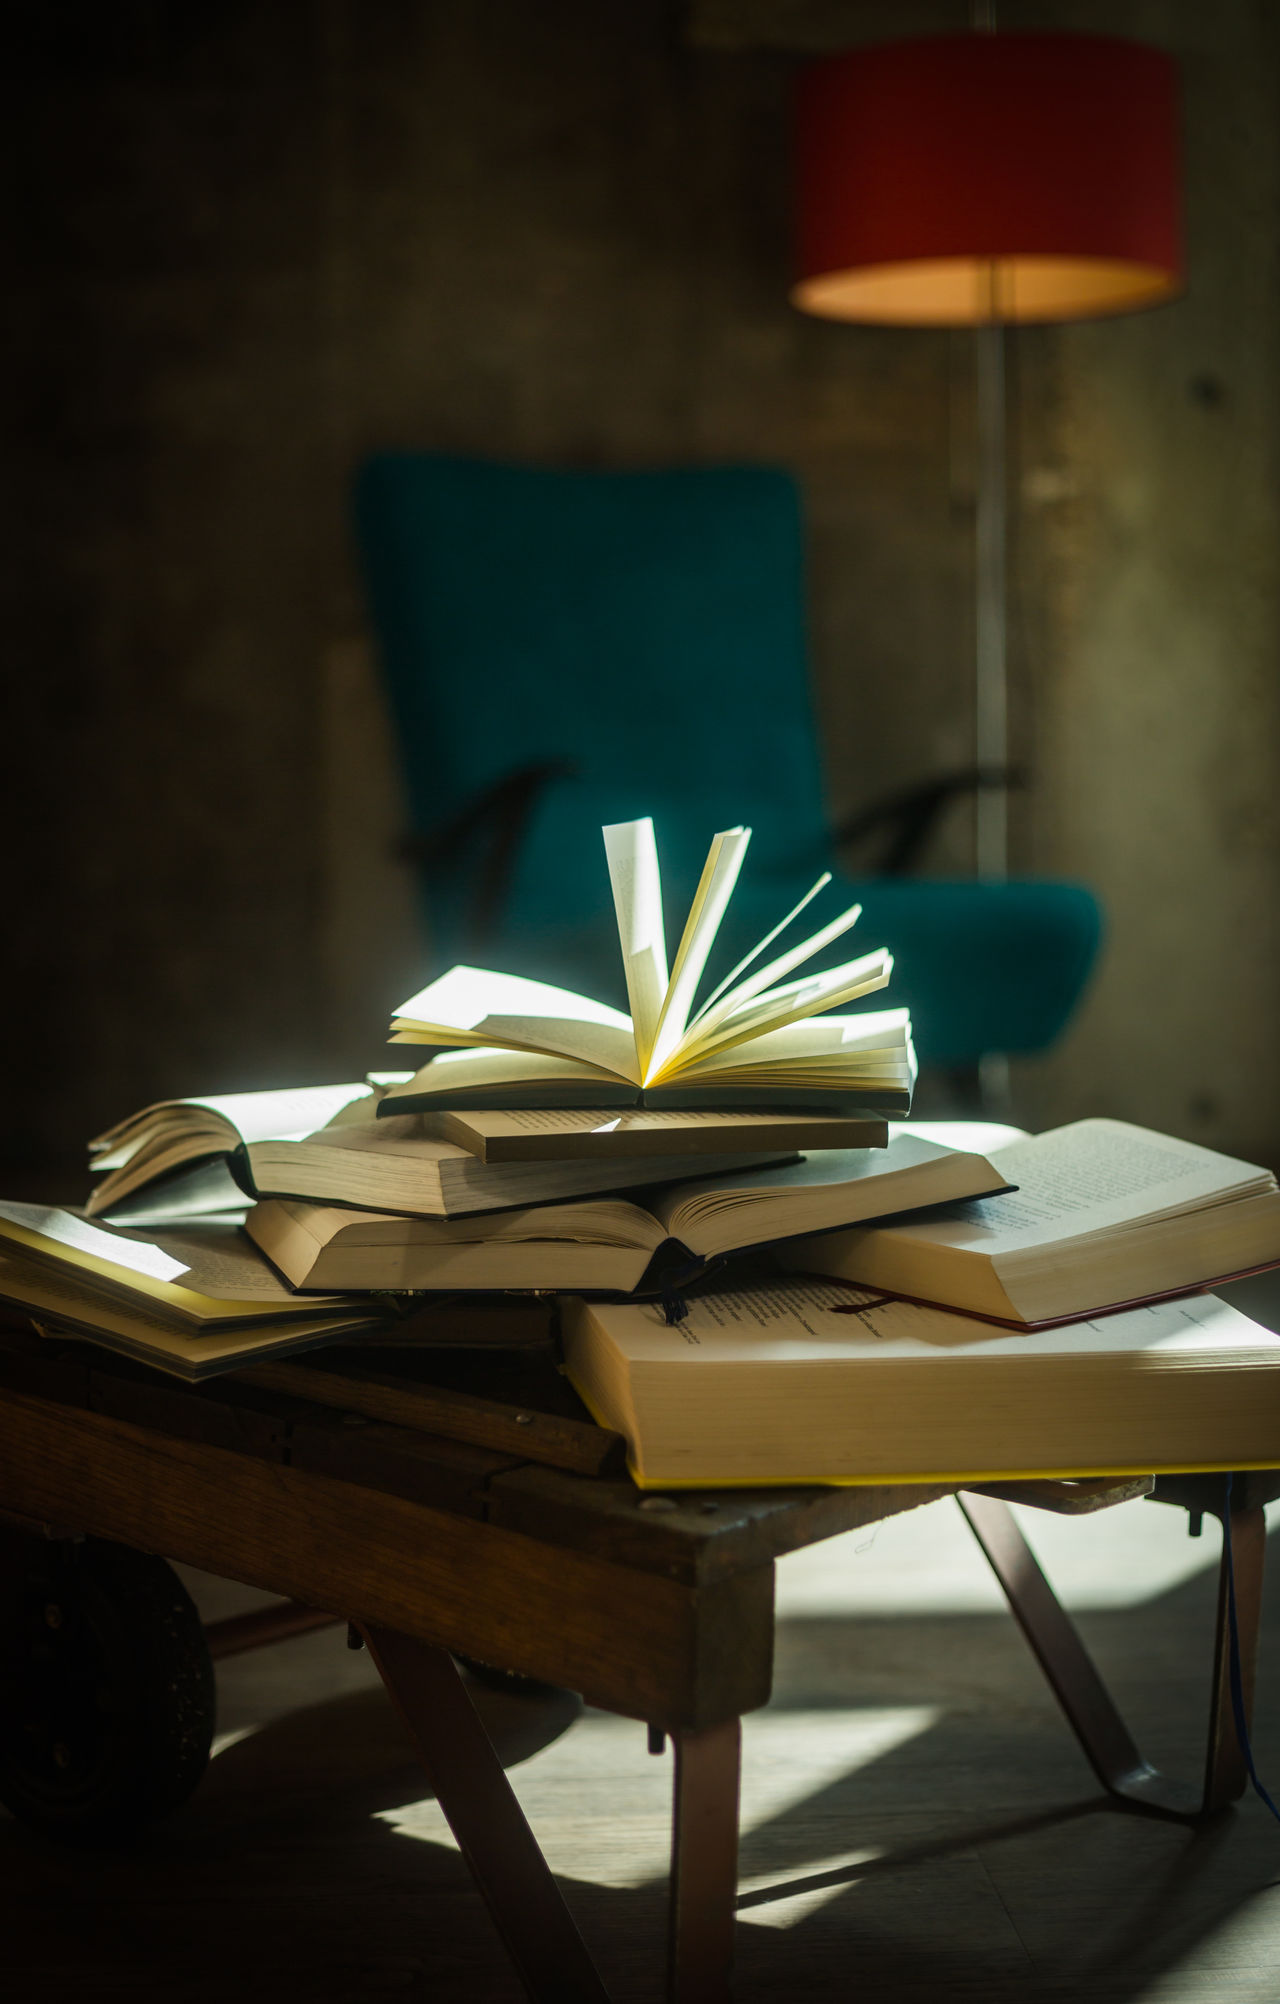 A pile of open books, bathed in light with a lamp and a chair in the backround, waiting for the reader to return No People Indoors  Illuminated Table Books BookLovers Light Books ♥ Book Reading A Book Nobody